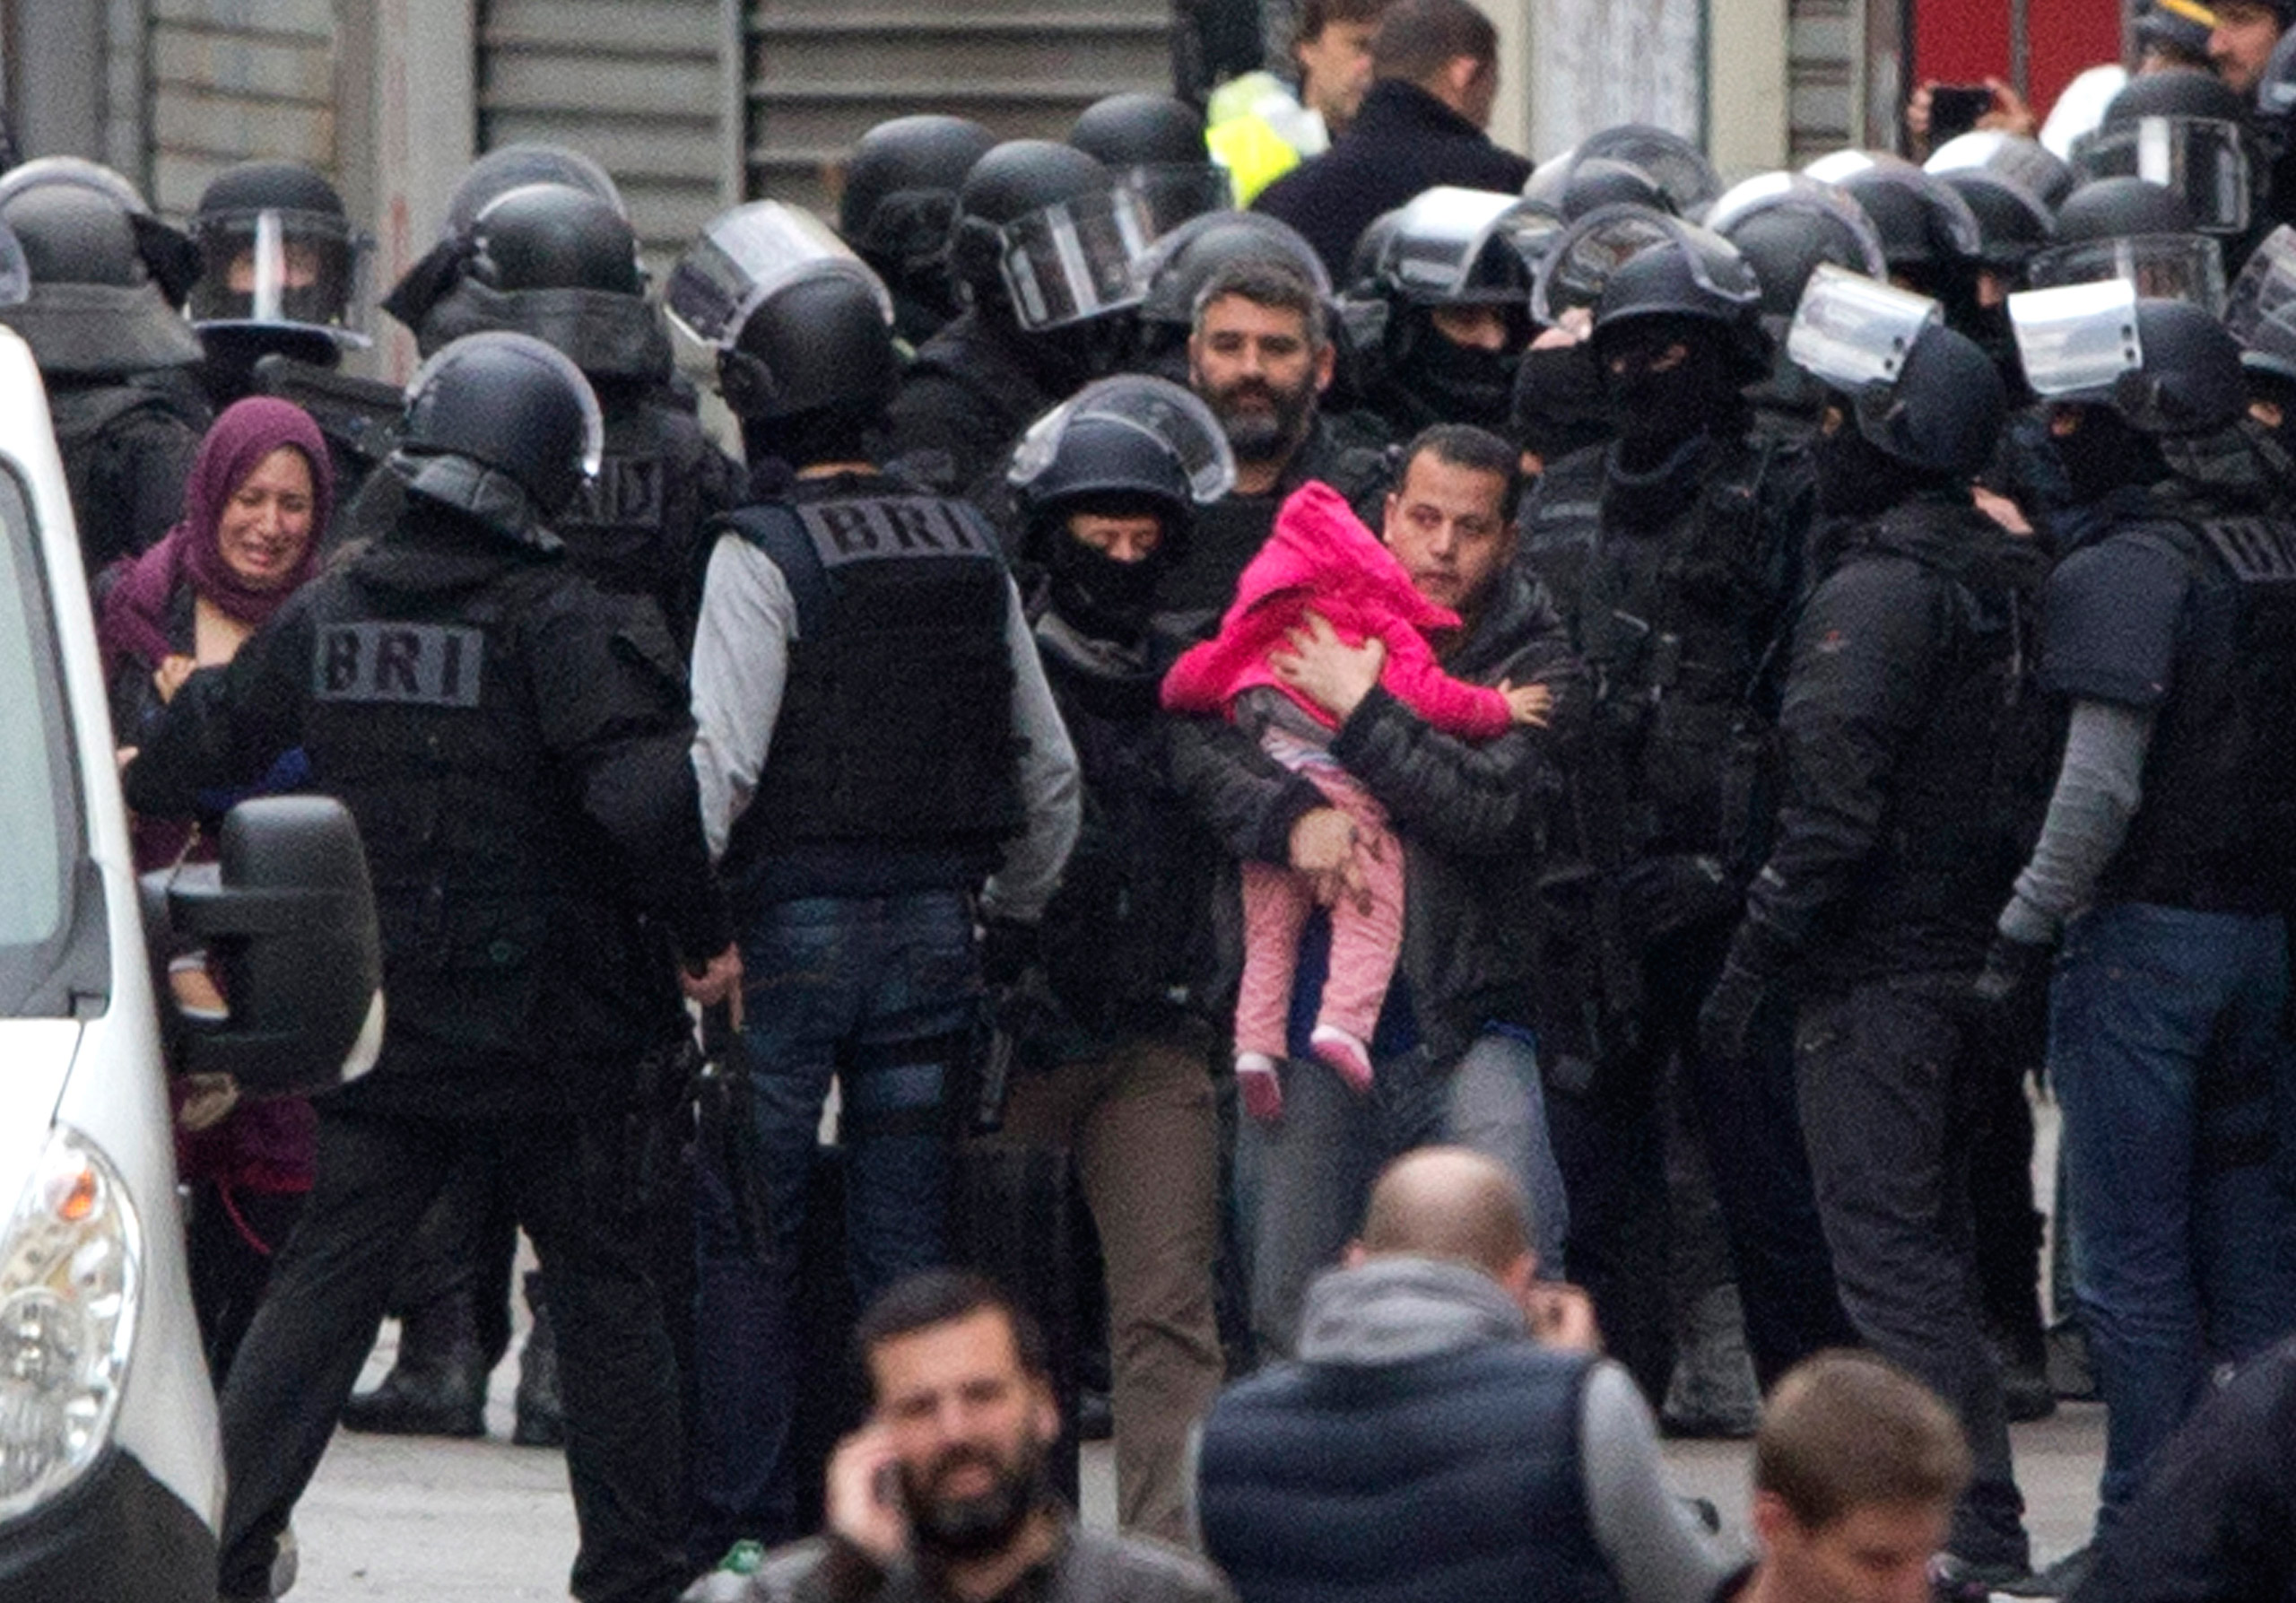 Residents are evacuated after a woman wearing an explosive suicide vest blew herself up as heavily armed police tried to storm an apartment during an anti-terrorism raid in Saint Denis, outside of Paris, on Nov. 18, 2015.